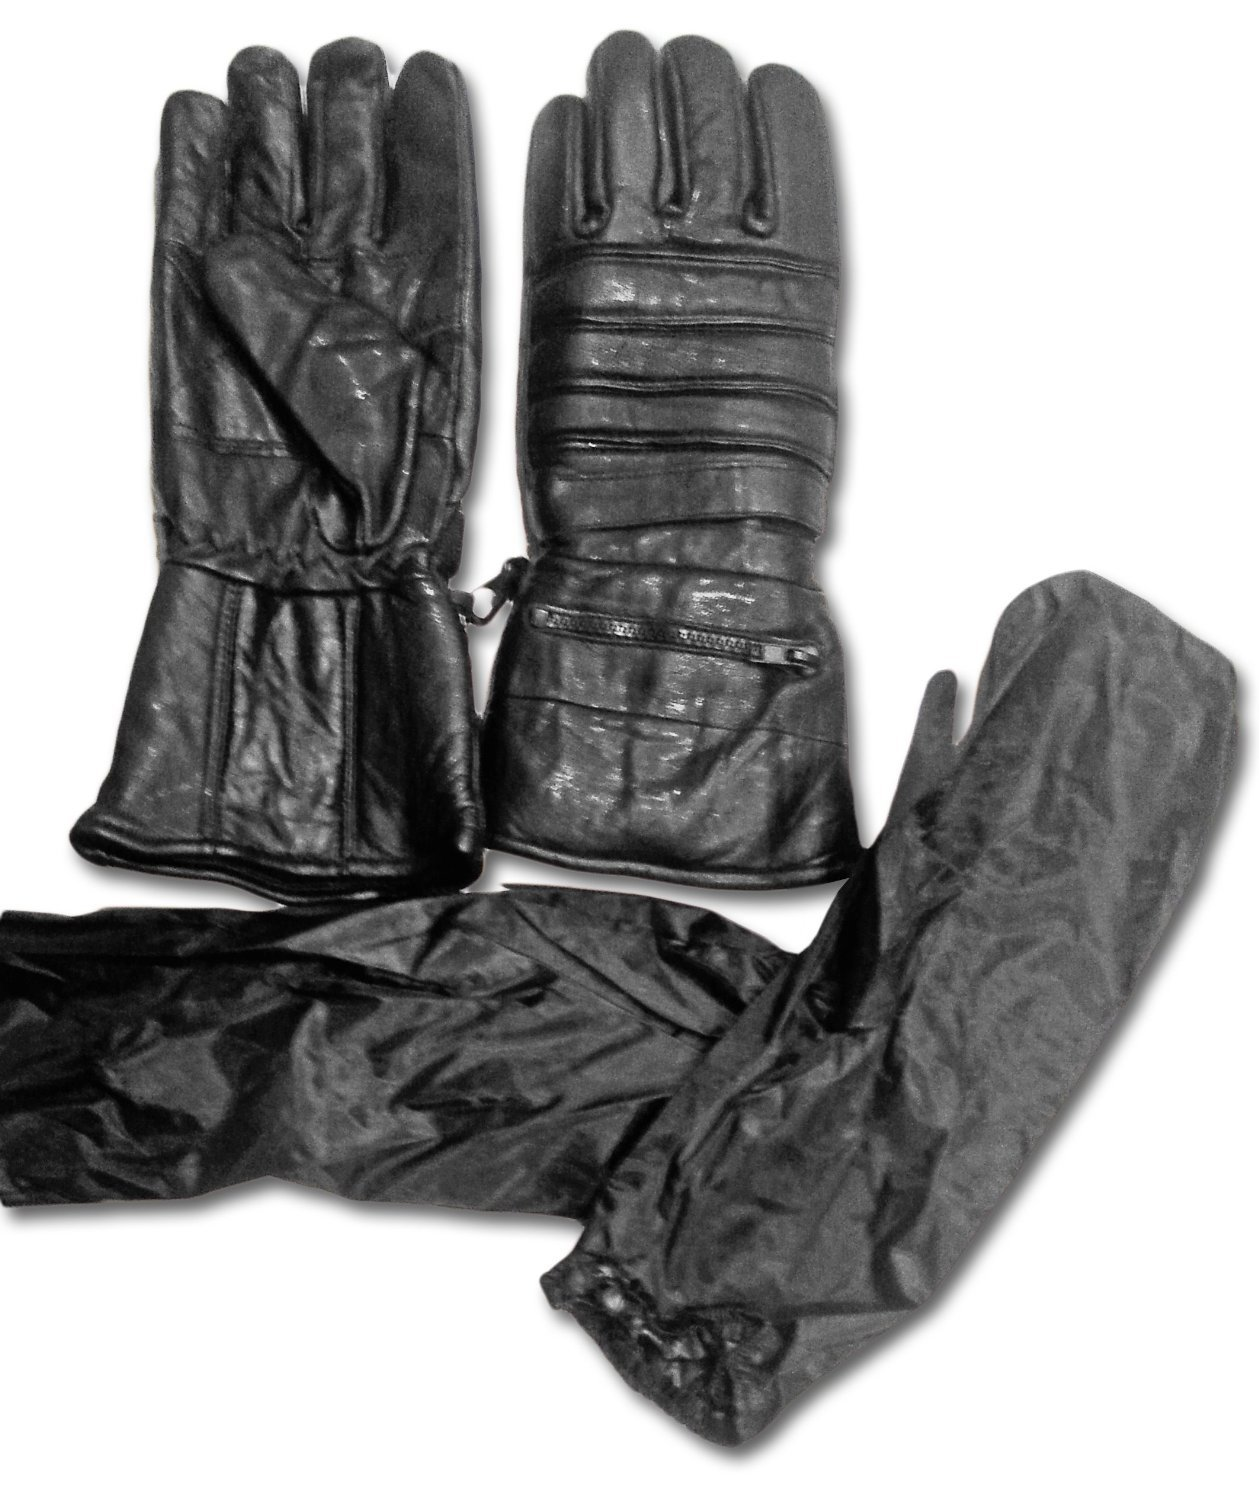 "Warmest 12"" Motorcycle Black Leather Riding Gauntlets by The Nekid Cow UNISEX Men & Women Gloves - Gauranteed - Includes Rain & Ice Cover Sleeve Accessory - Extra Long Glove with Extra protection for Cold Weather & All Year Round - Perfect for Winter & Snowmobiling (Snowmobiles) - Warm, Waterproof,"